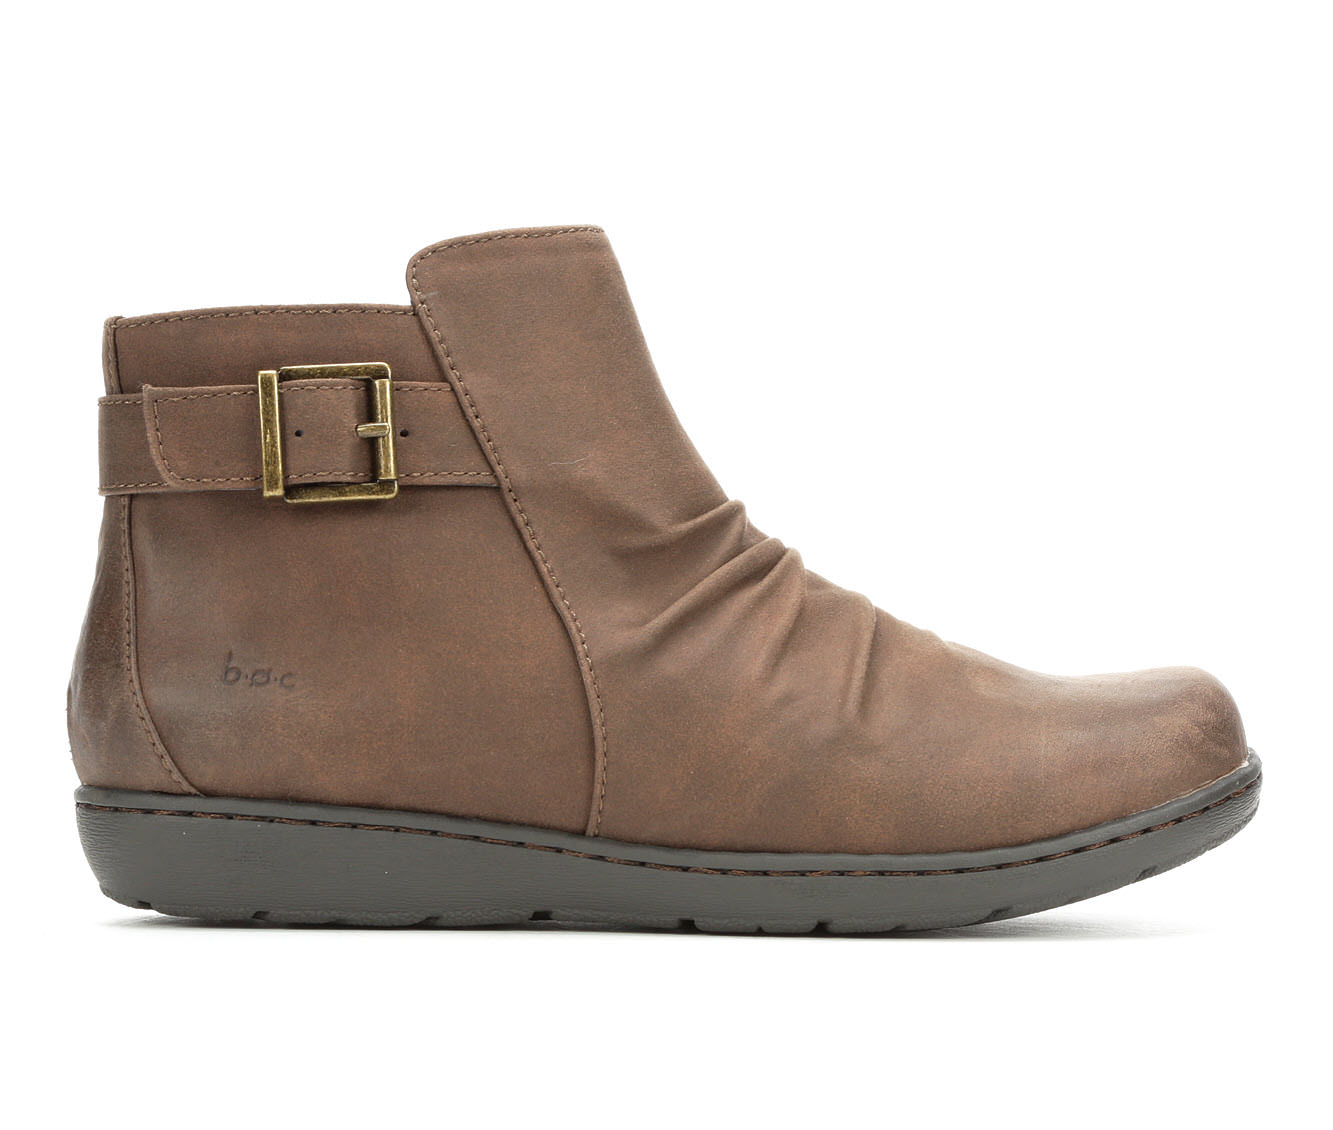 B.O.C. Blanche Women's Boots (Brown - Faux Leather)